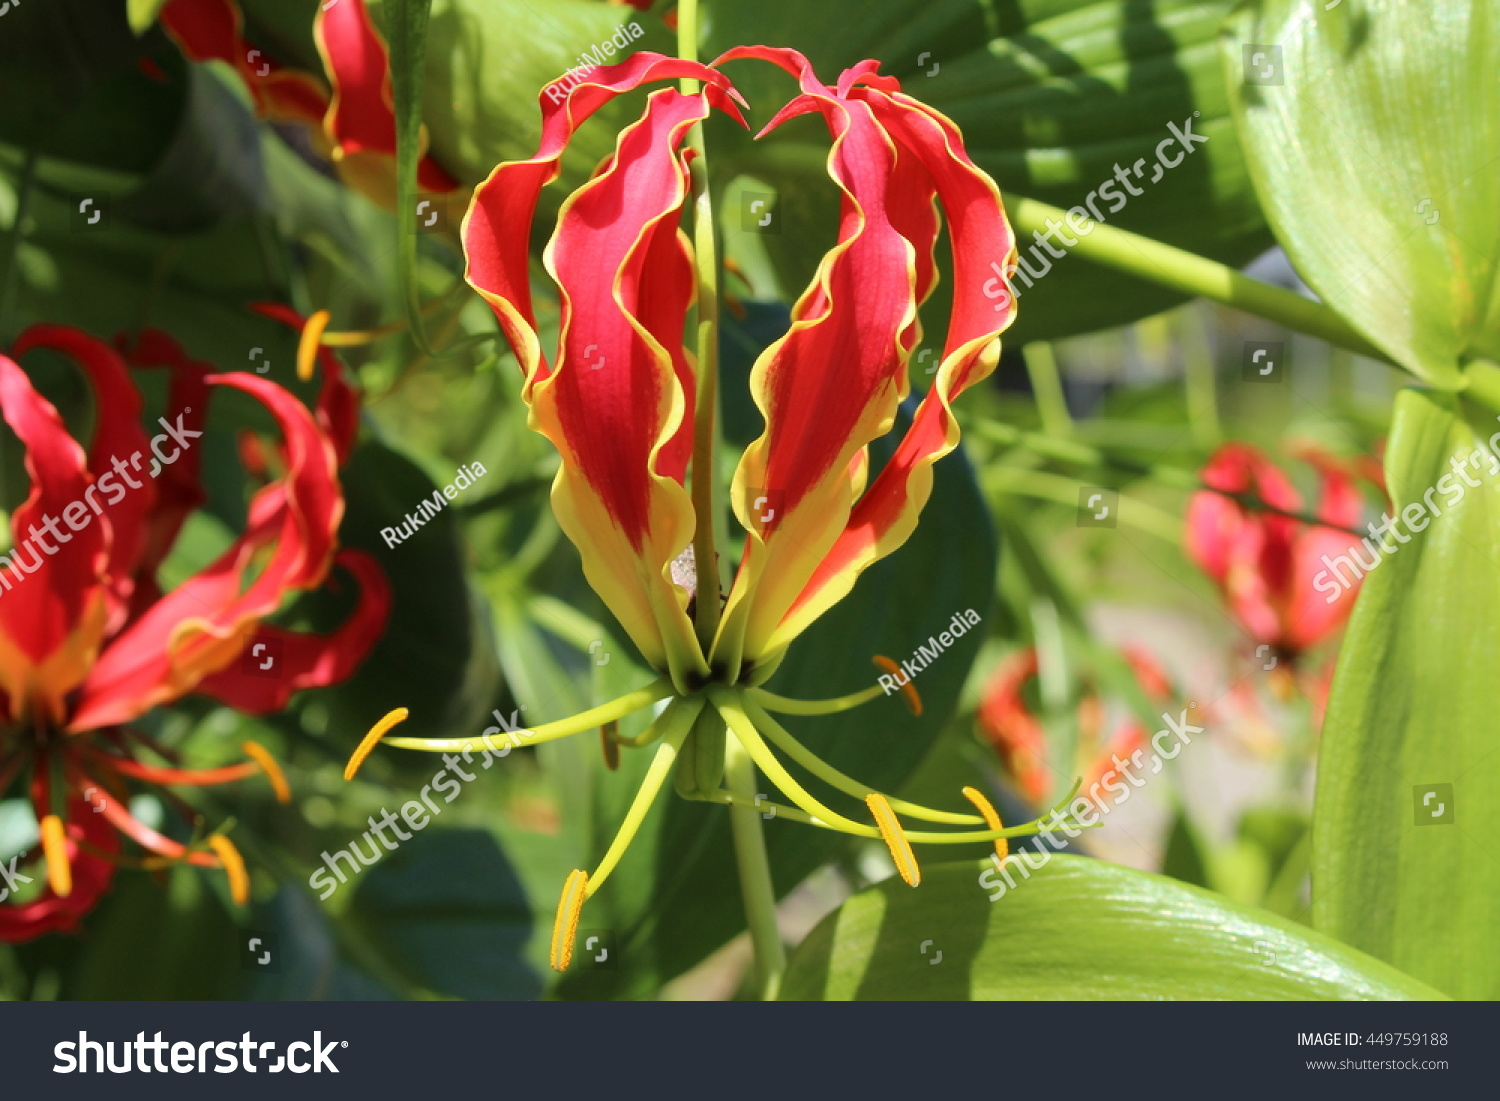 Red yellow flame lily flower or stock photo edit now 449759188 red and yellow flame lily flower or climbing lily creeping lily izmirmasajfo